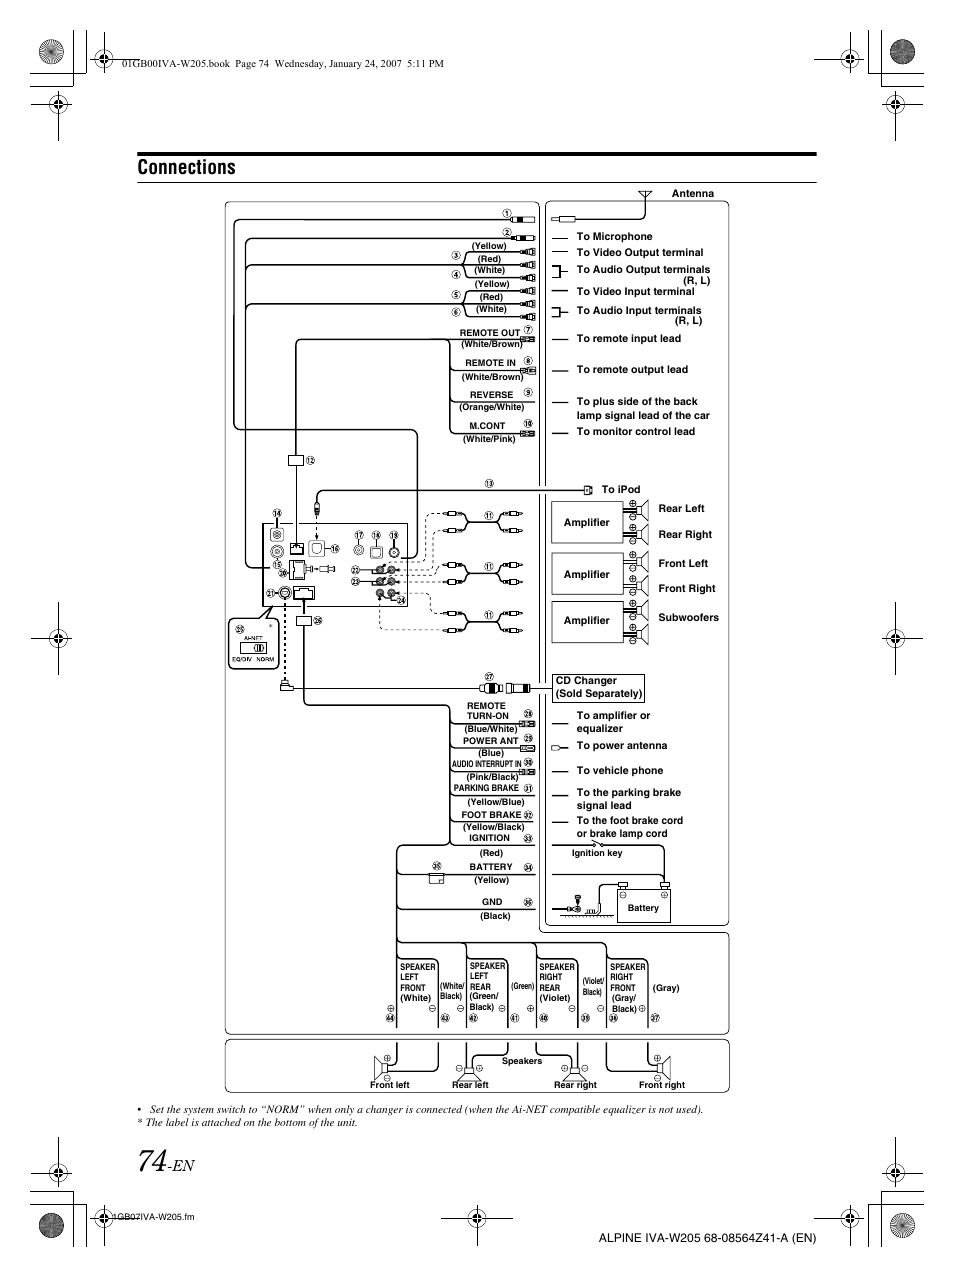 hight resolution of iva w205 wiring wiring diagram nowconnections alpine iva w205 user manual page 76 238 original cda